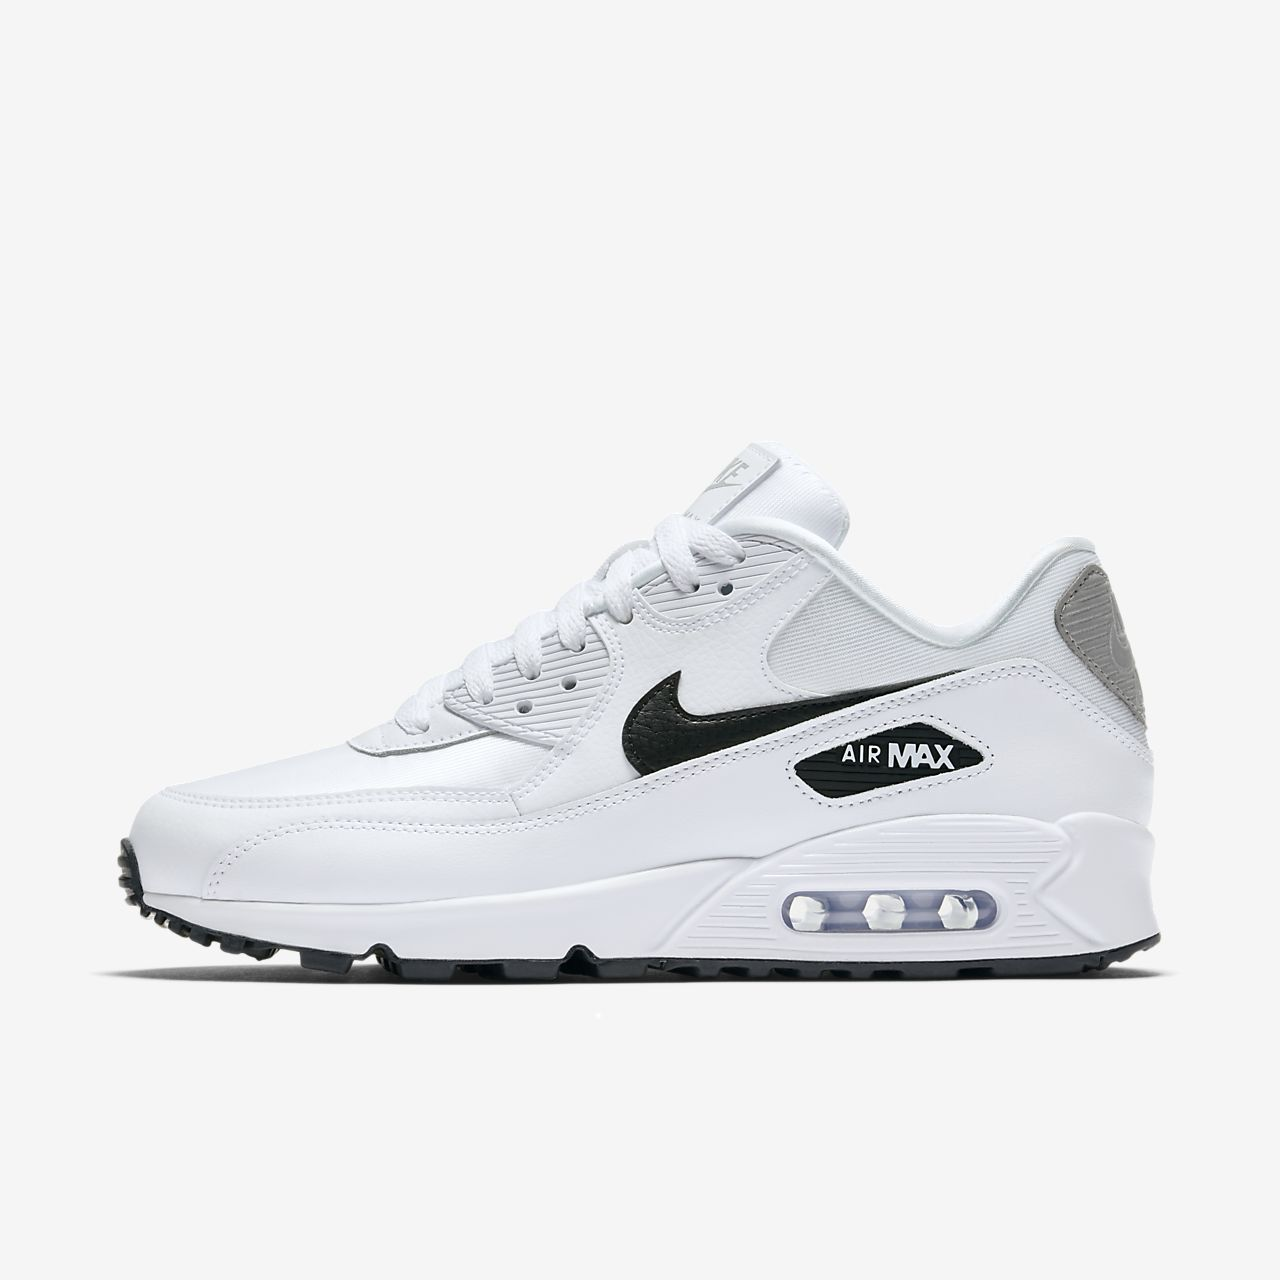 on sale cdbab e658c ... Nike Air Max 90 Womens Shoe